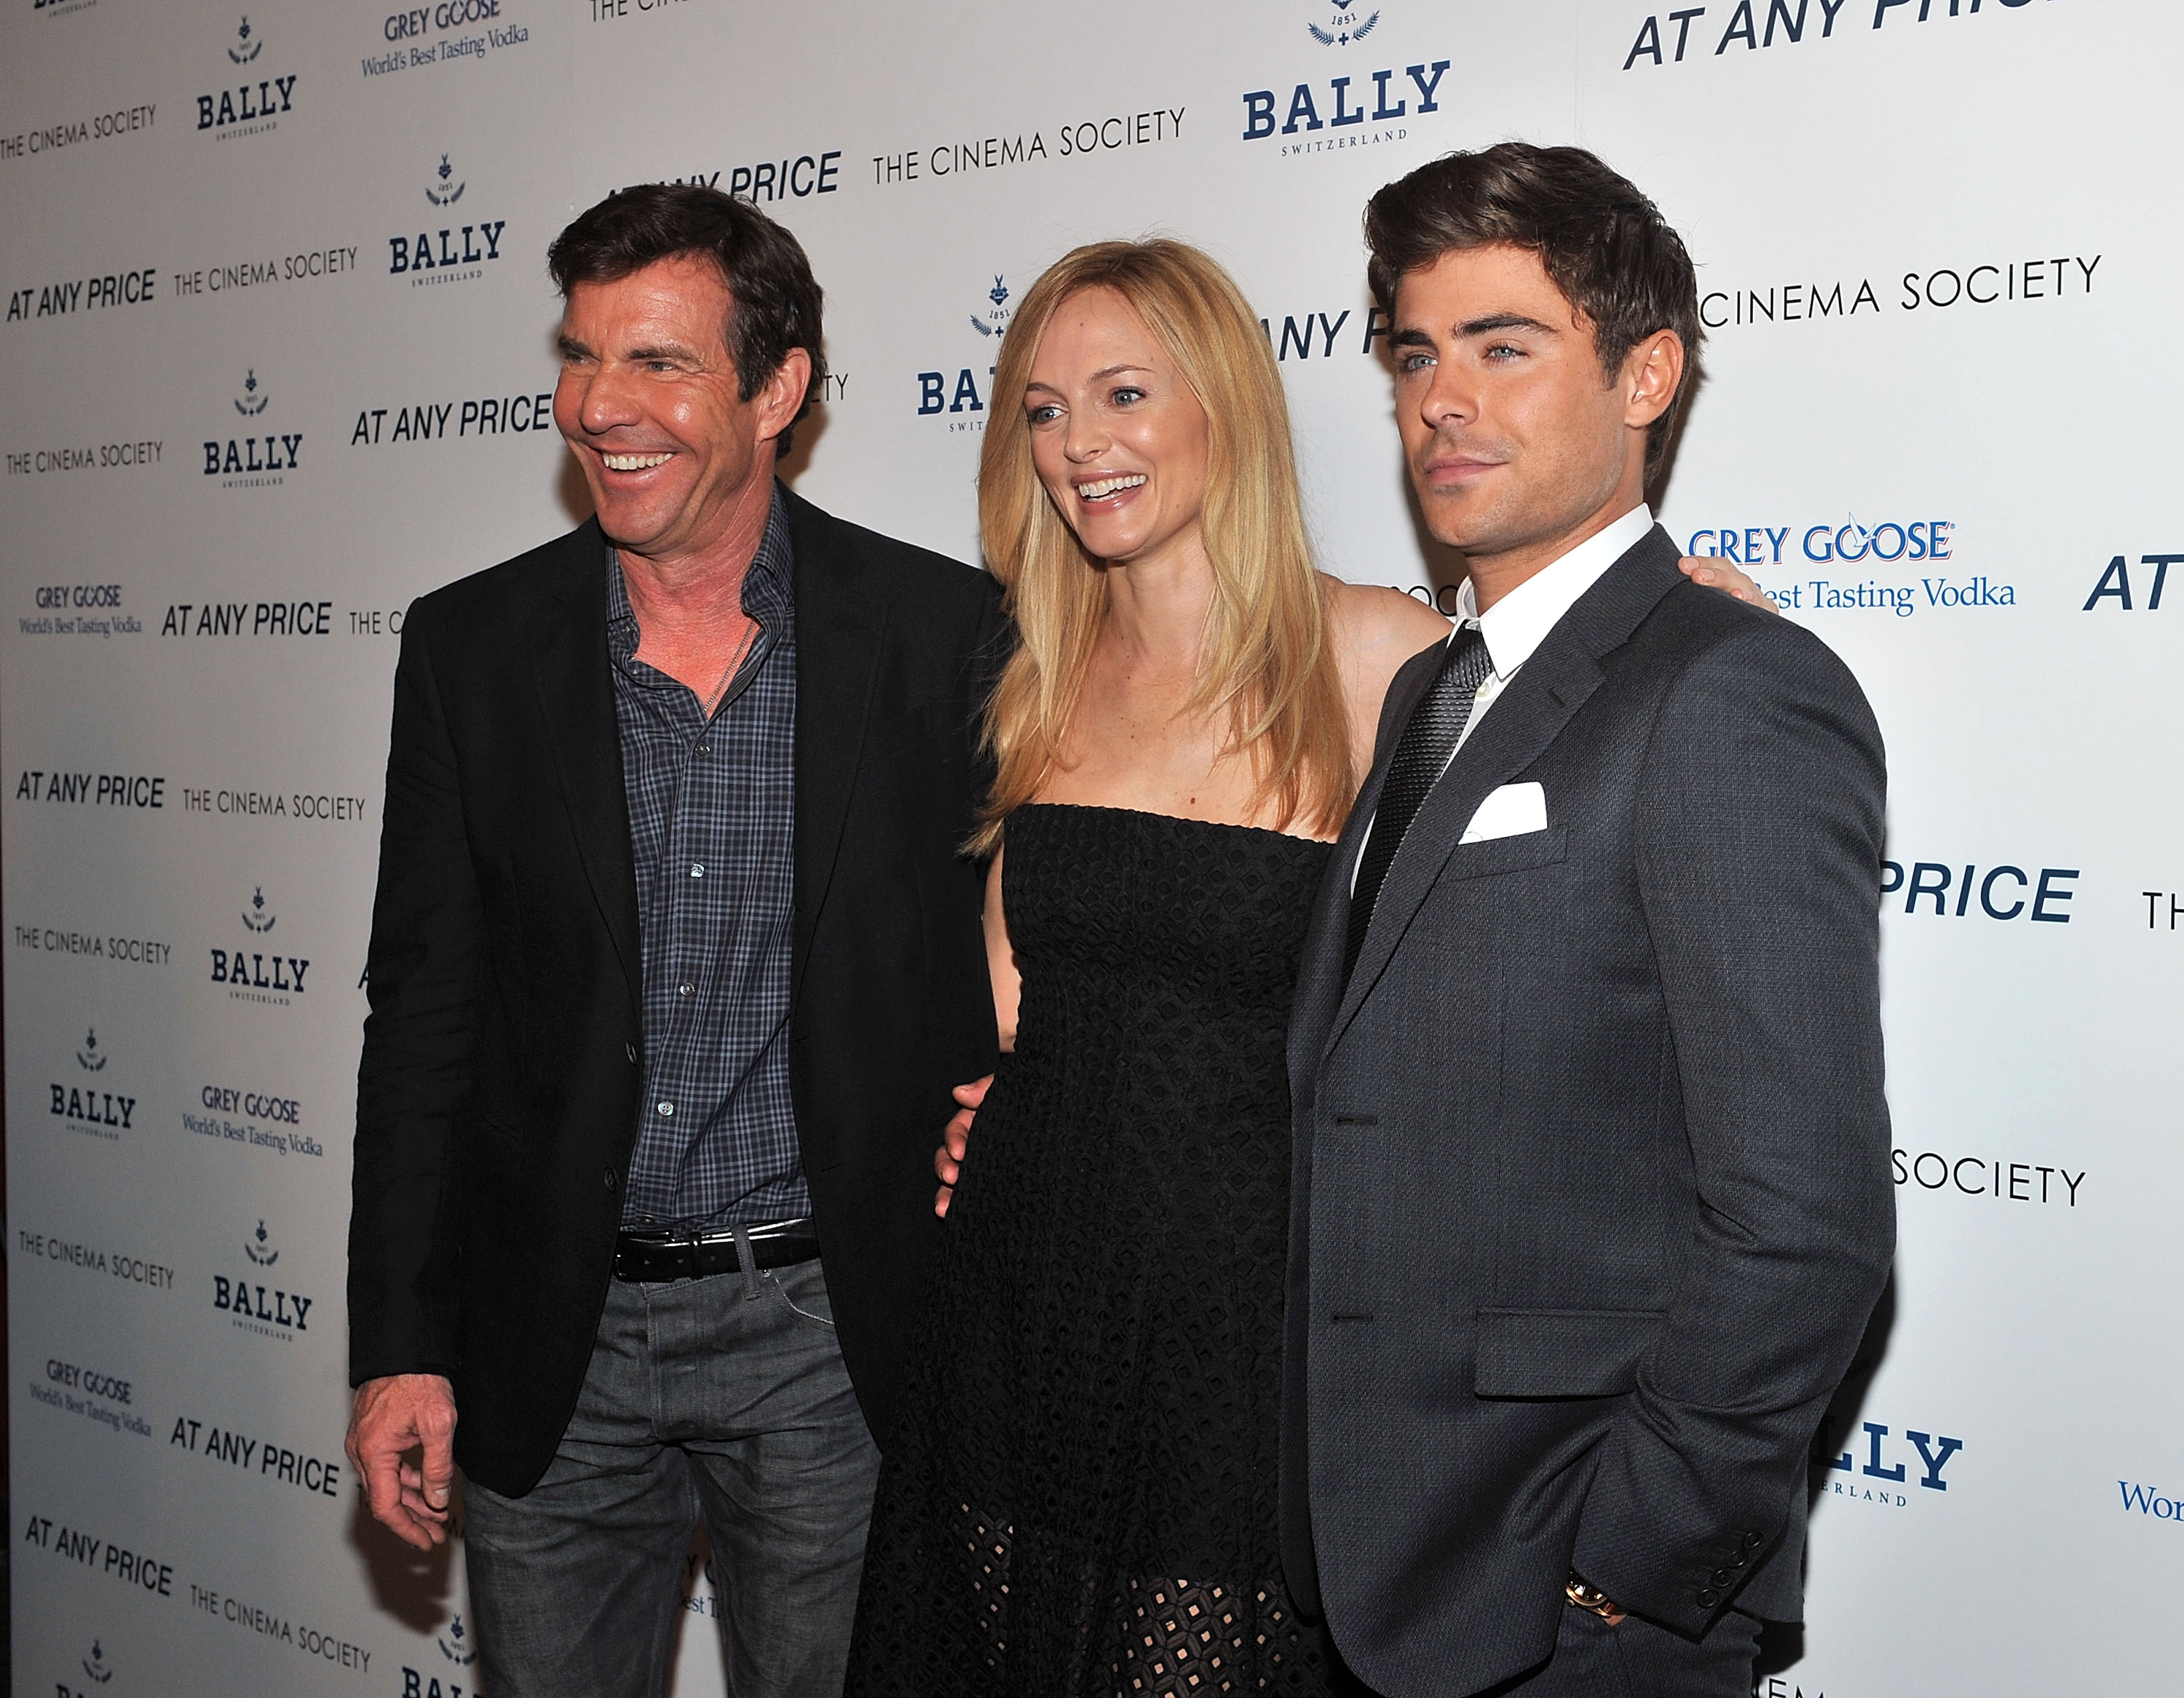 Dennis Quaid, Heather Graham, and Zac Efron got together for